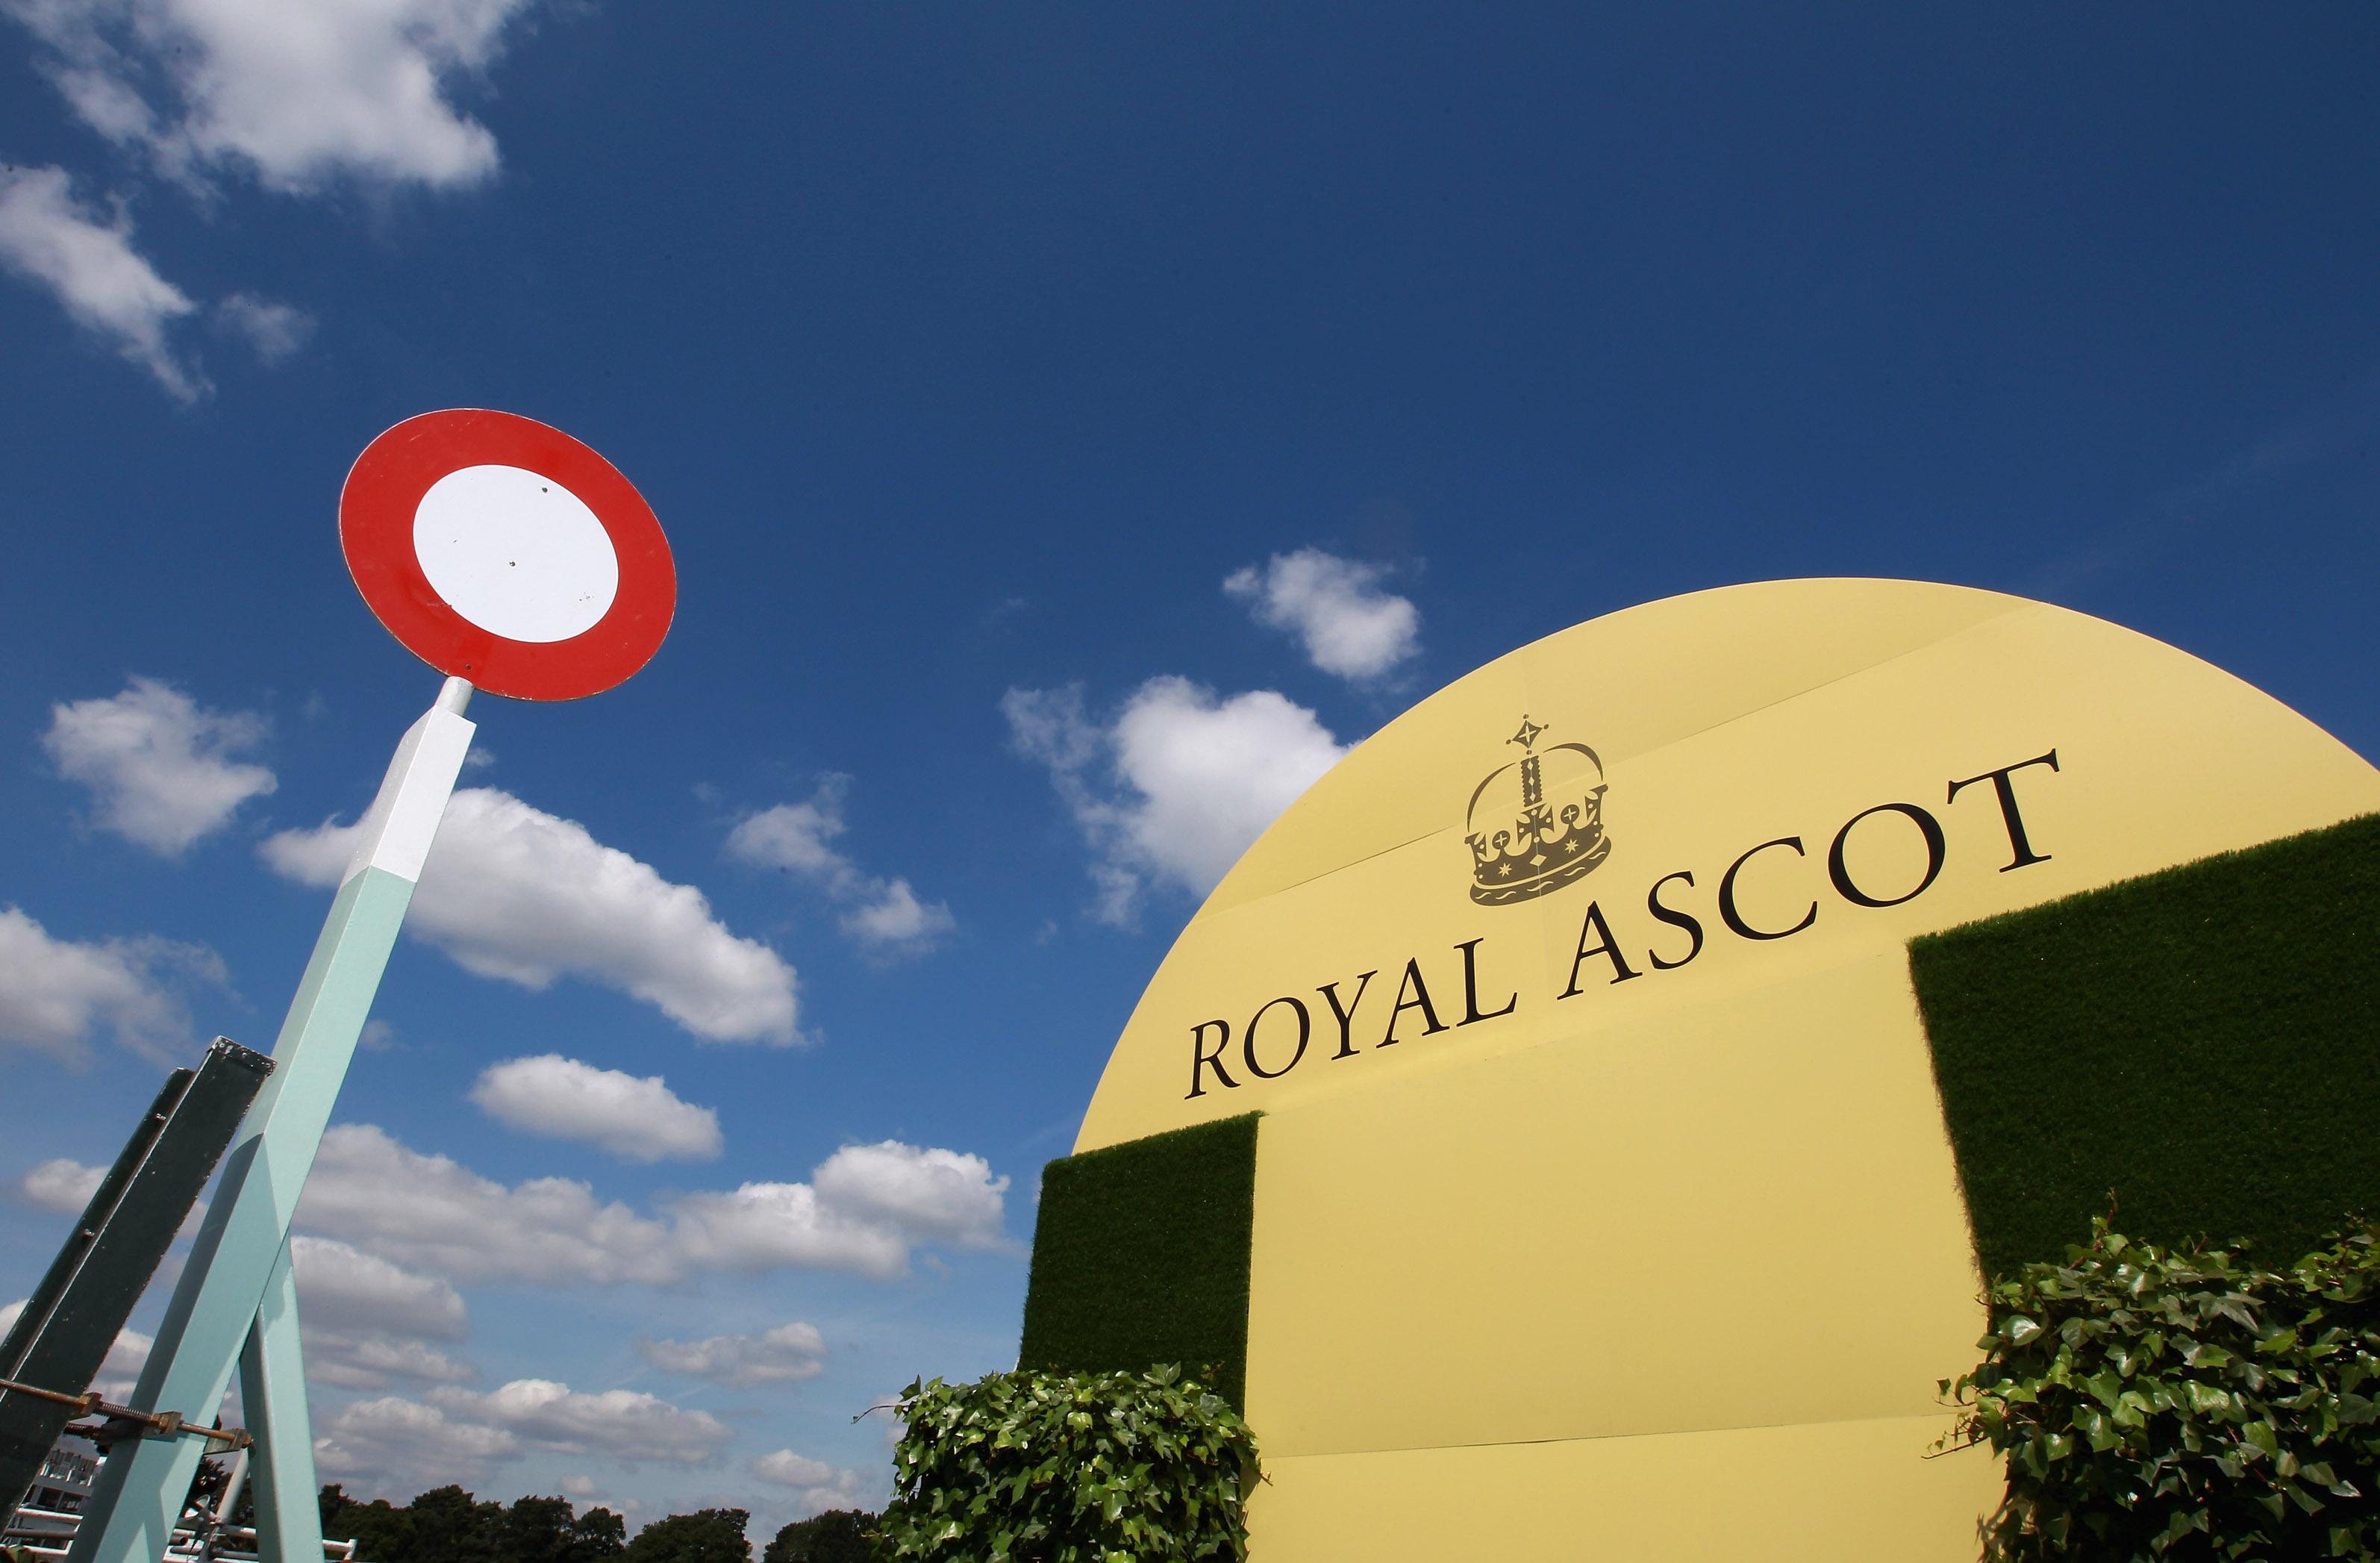 Royal Ascot is the most prestigious race meeting in Britain